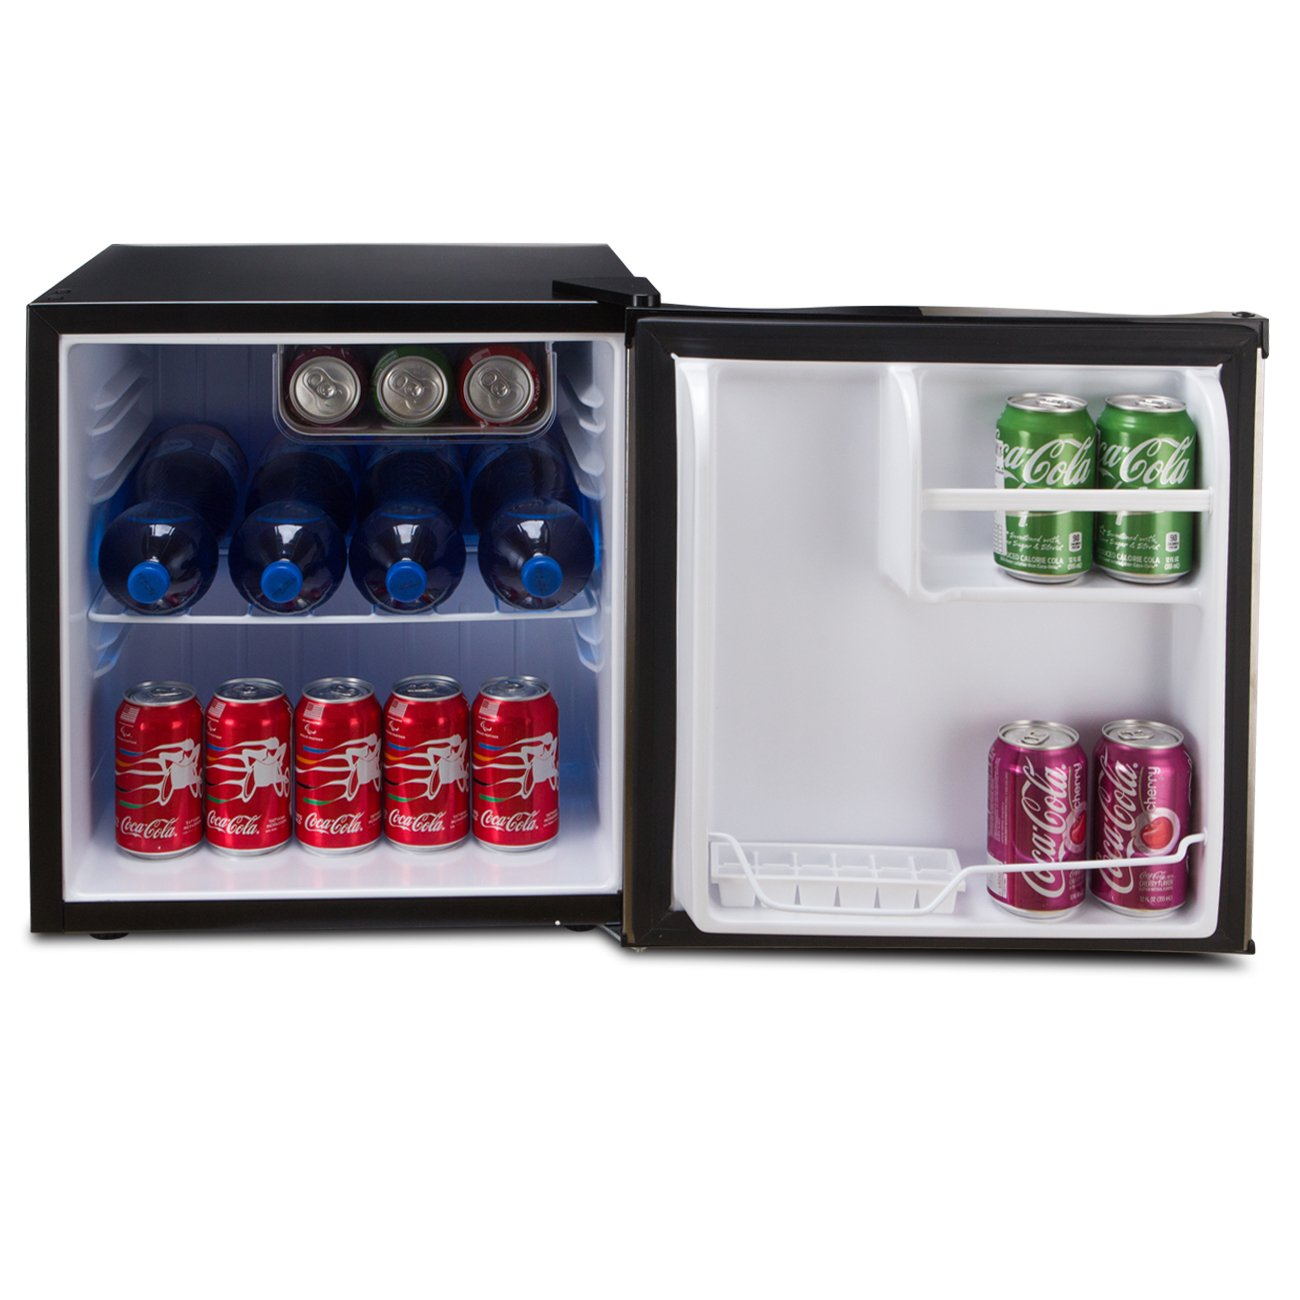 Della Compact Mini Refrigerator & Freezer, 1.6 Cubic Feet, Stainless Steel by DELLA (Image #3)